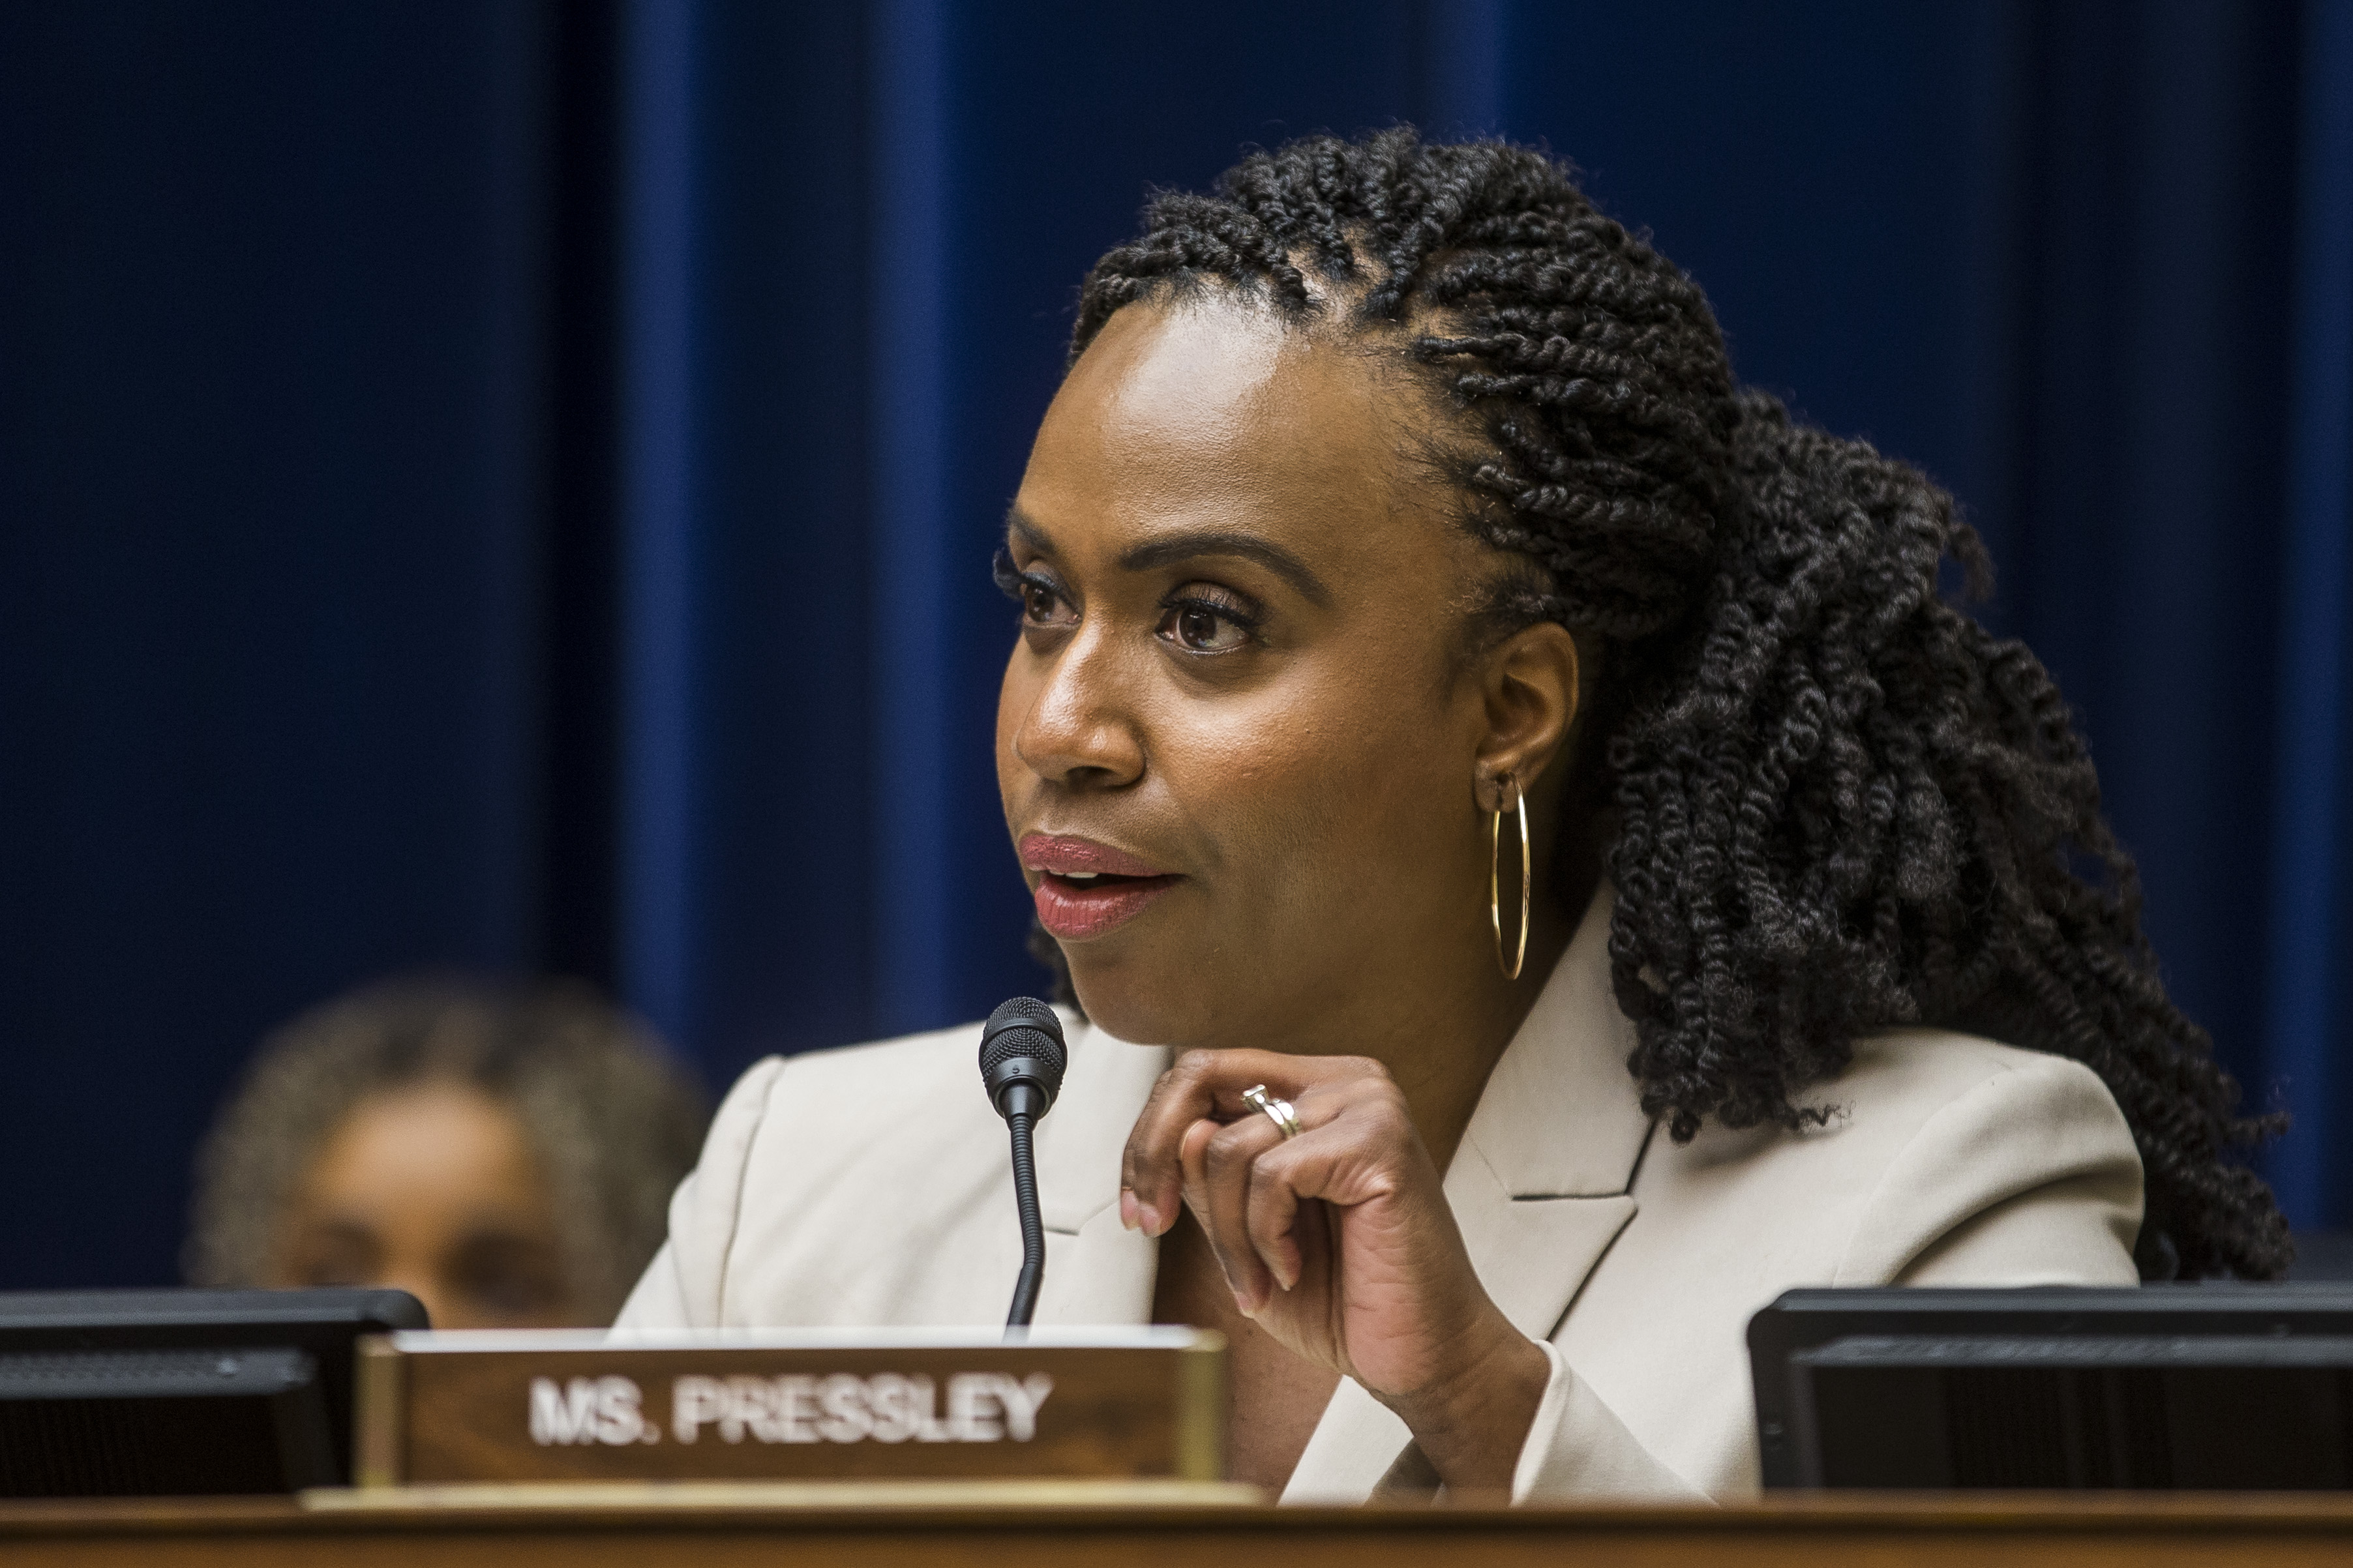 Ayanna Pressley hits back at Trump: 'This is what racism looks like'